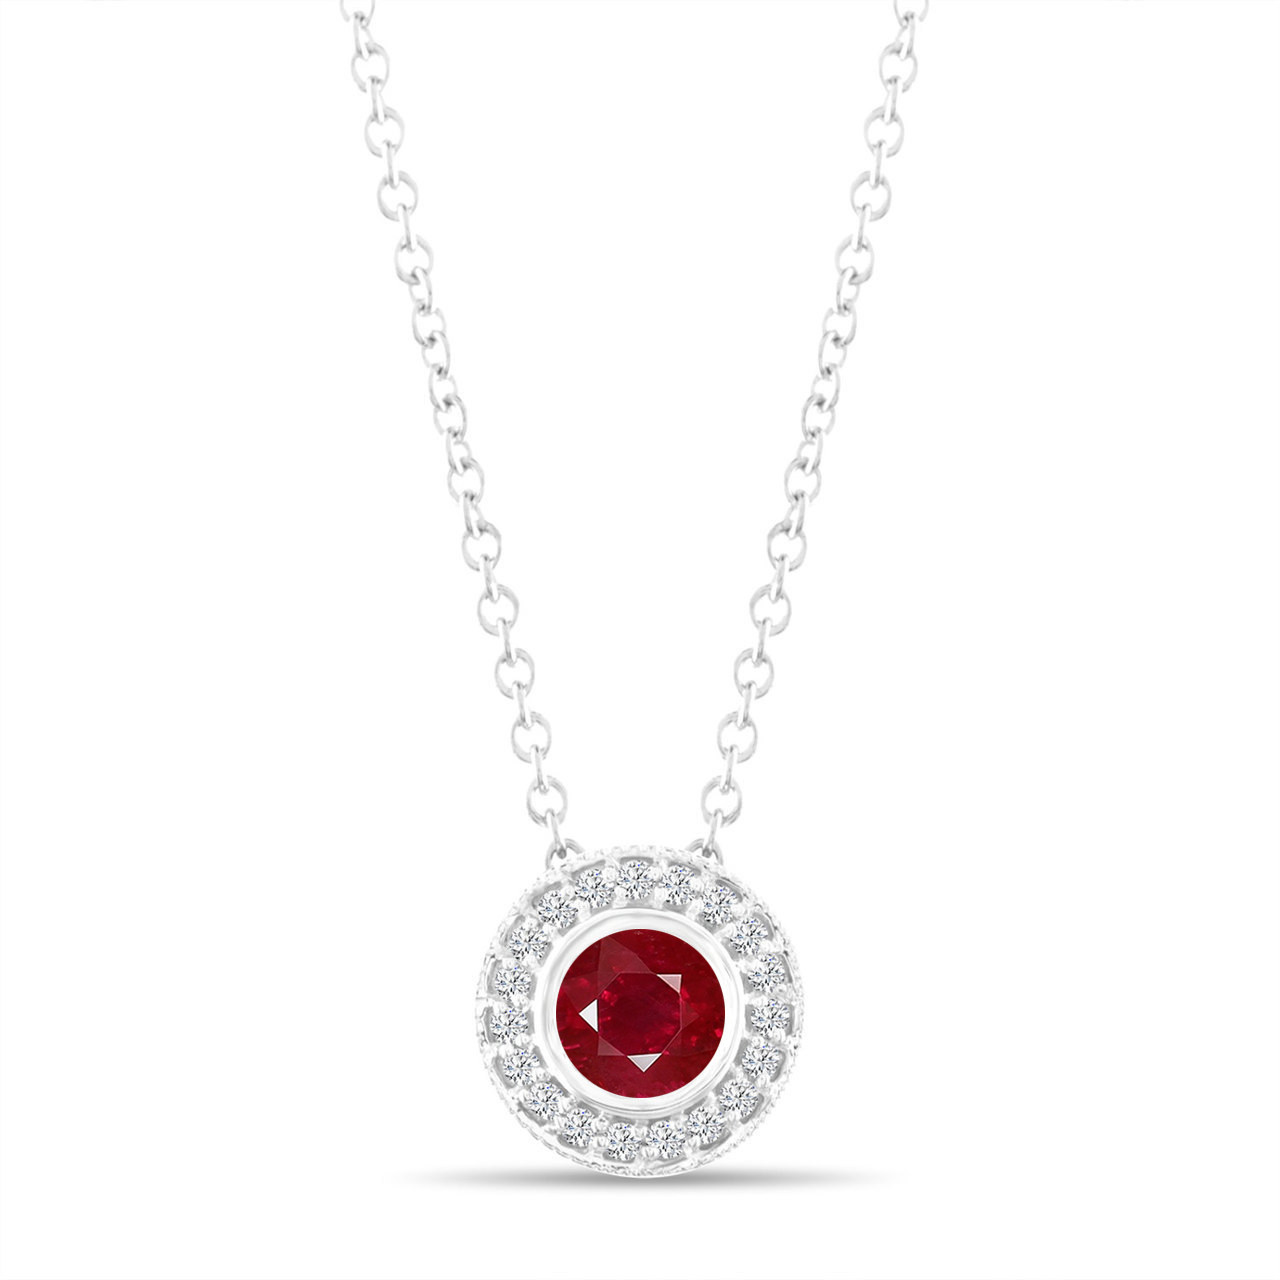 vohk products top y front necklace atelier valani r ruby pendant